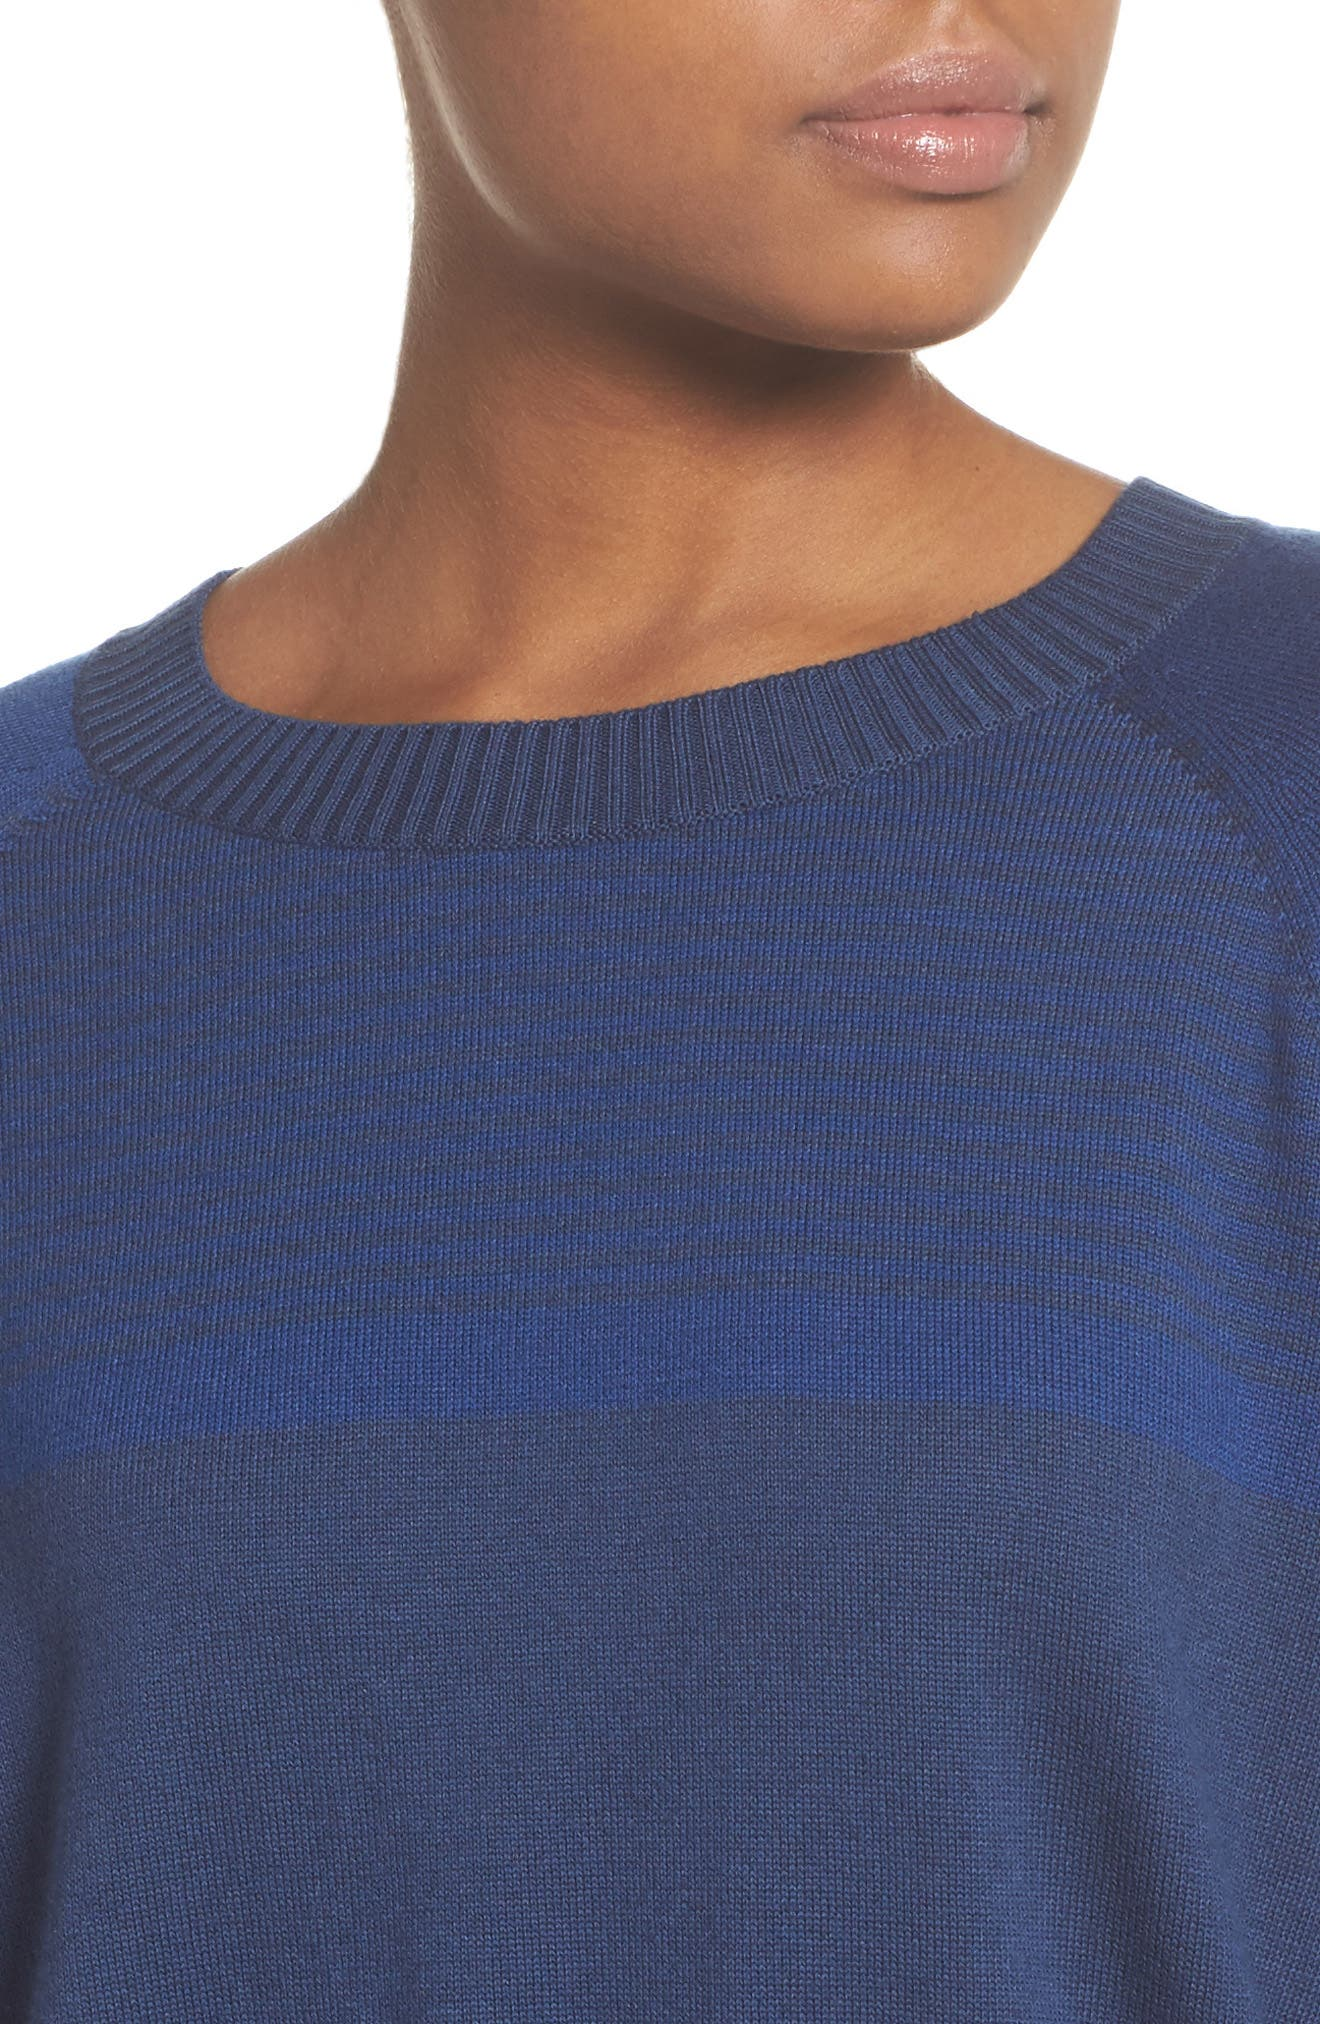 Prism Cropped Sweater,                             Alternate thumbnail 4, color,                             400